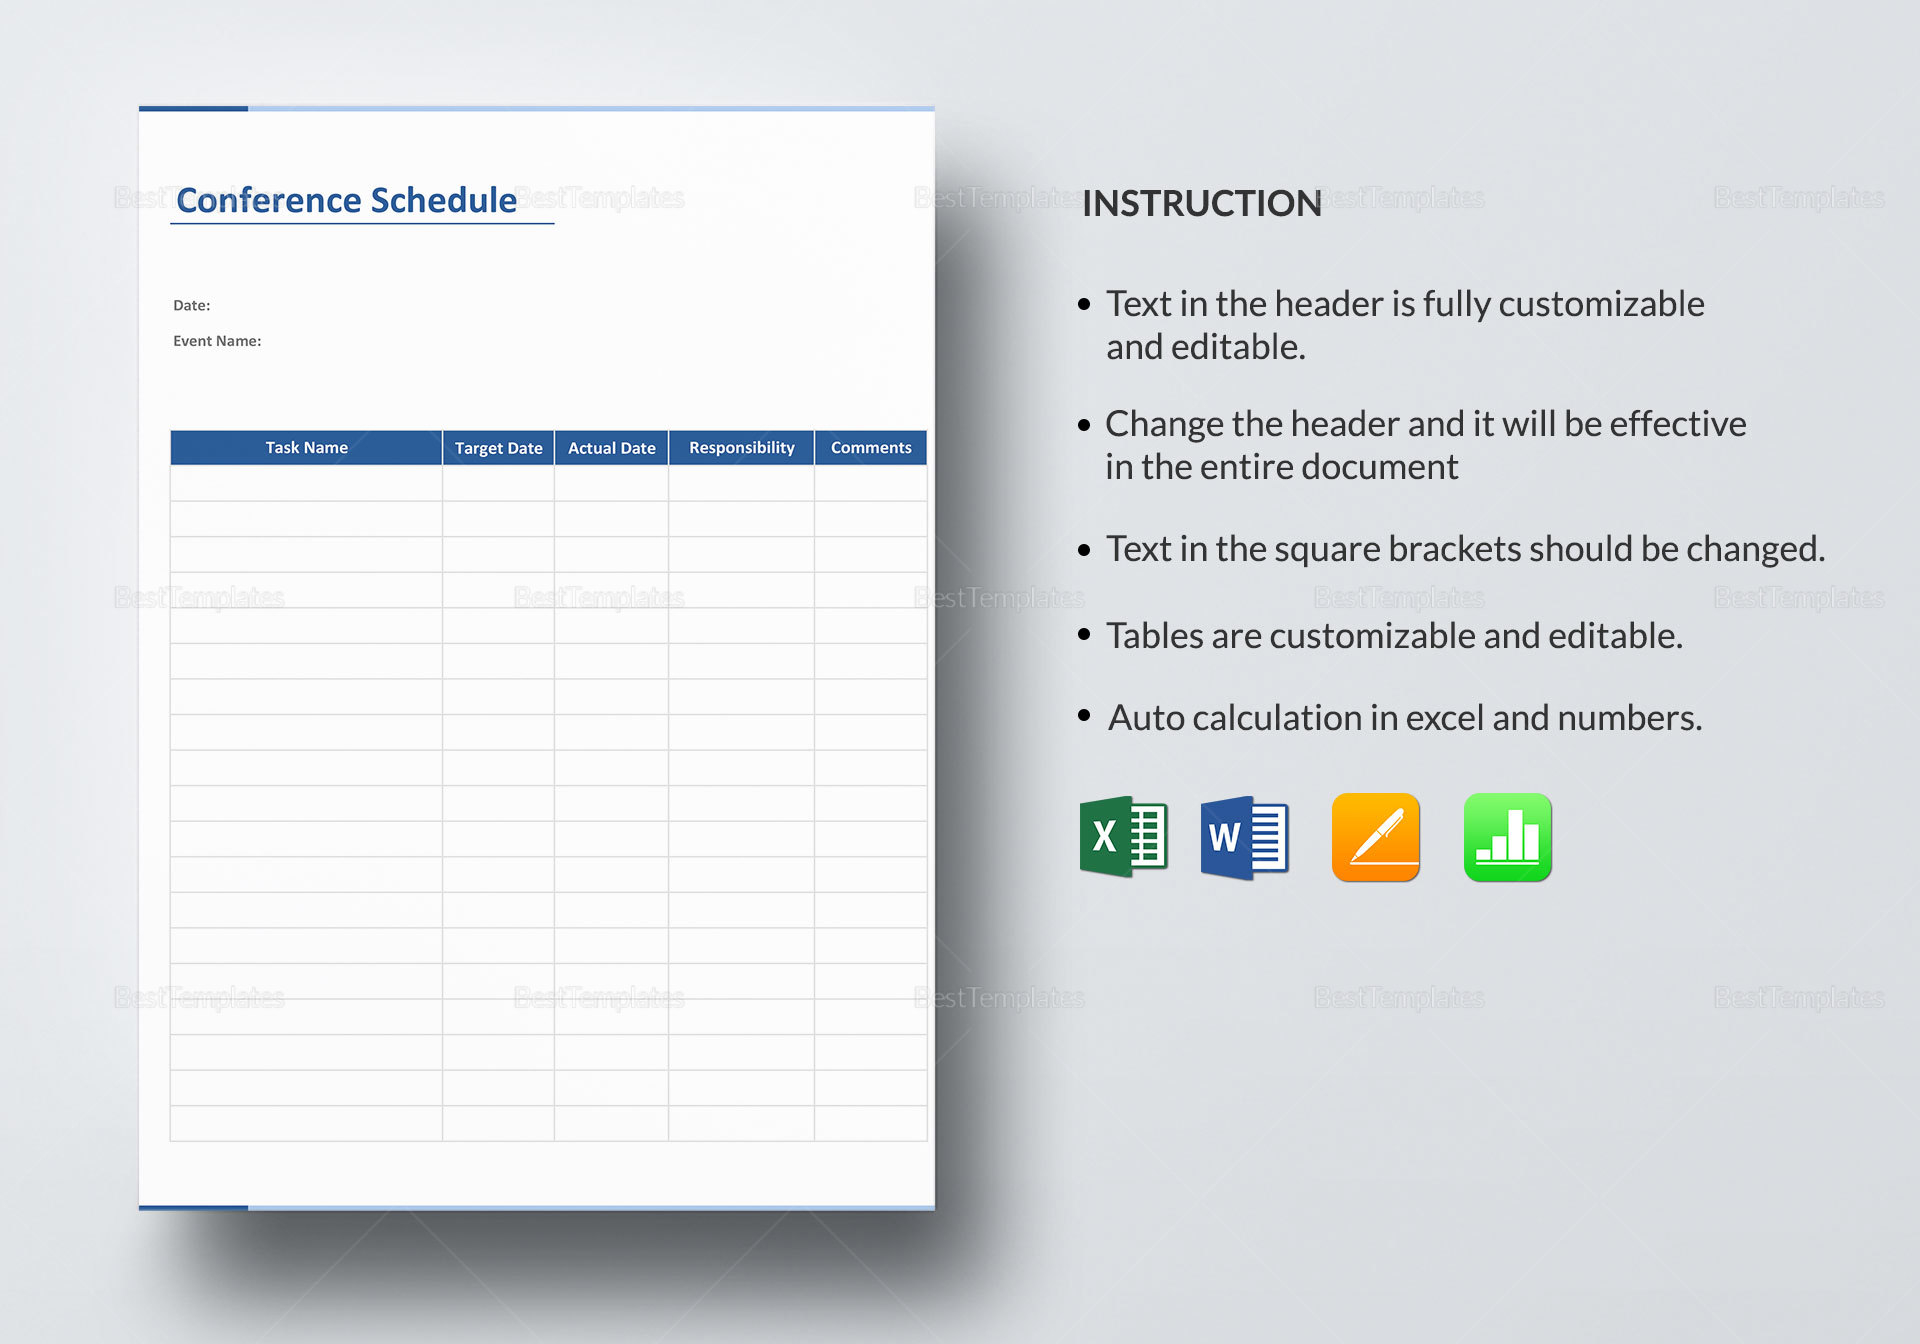 Conference Schedule Template in Word Excel Apple Pages Numbers